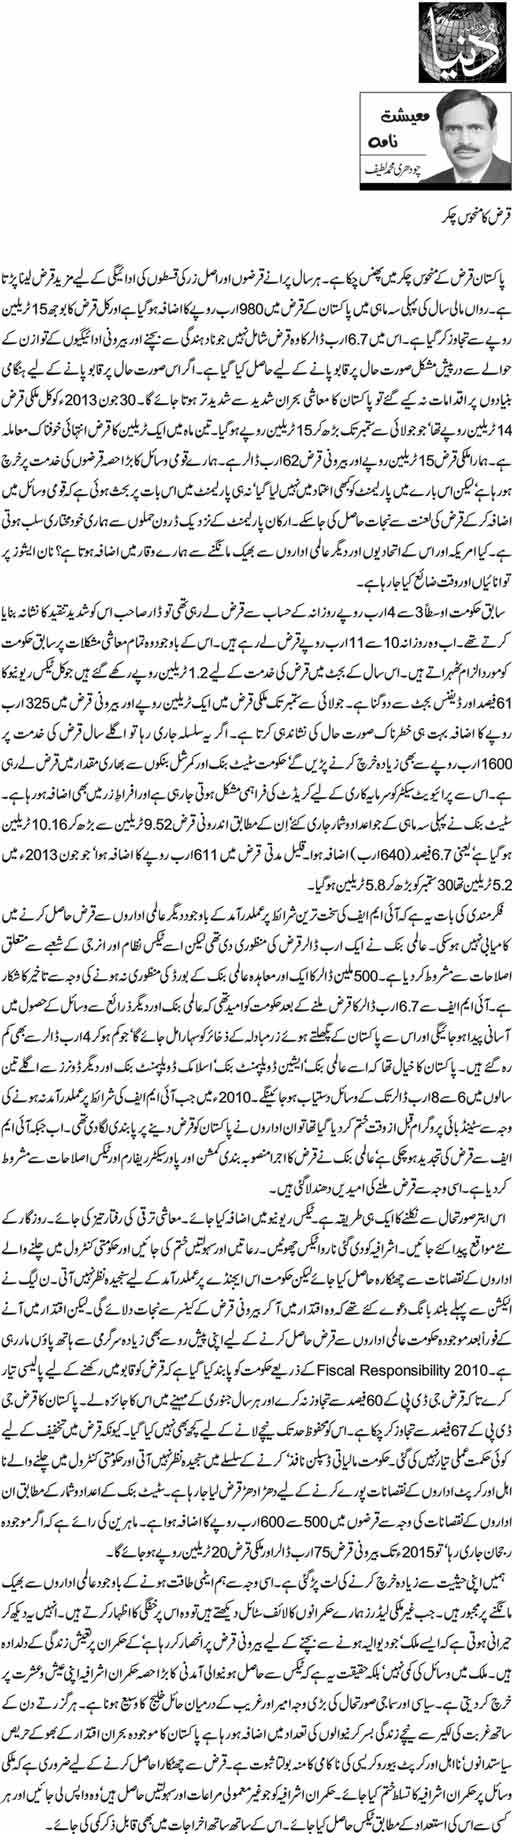 Karz Ka Manhoos Chakkar - Chaudhry Muhammad Lateef - 30th November 2013